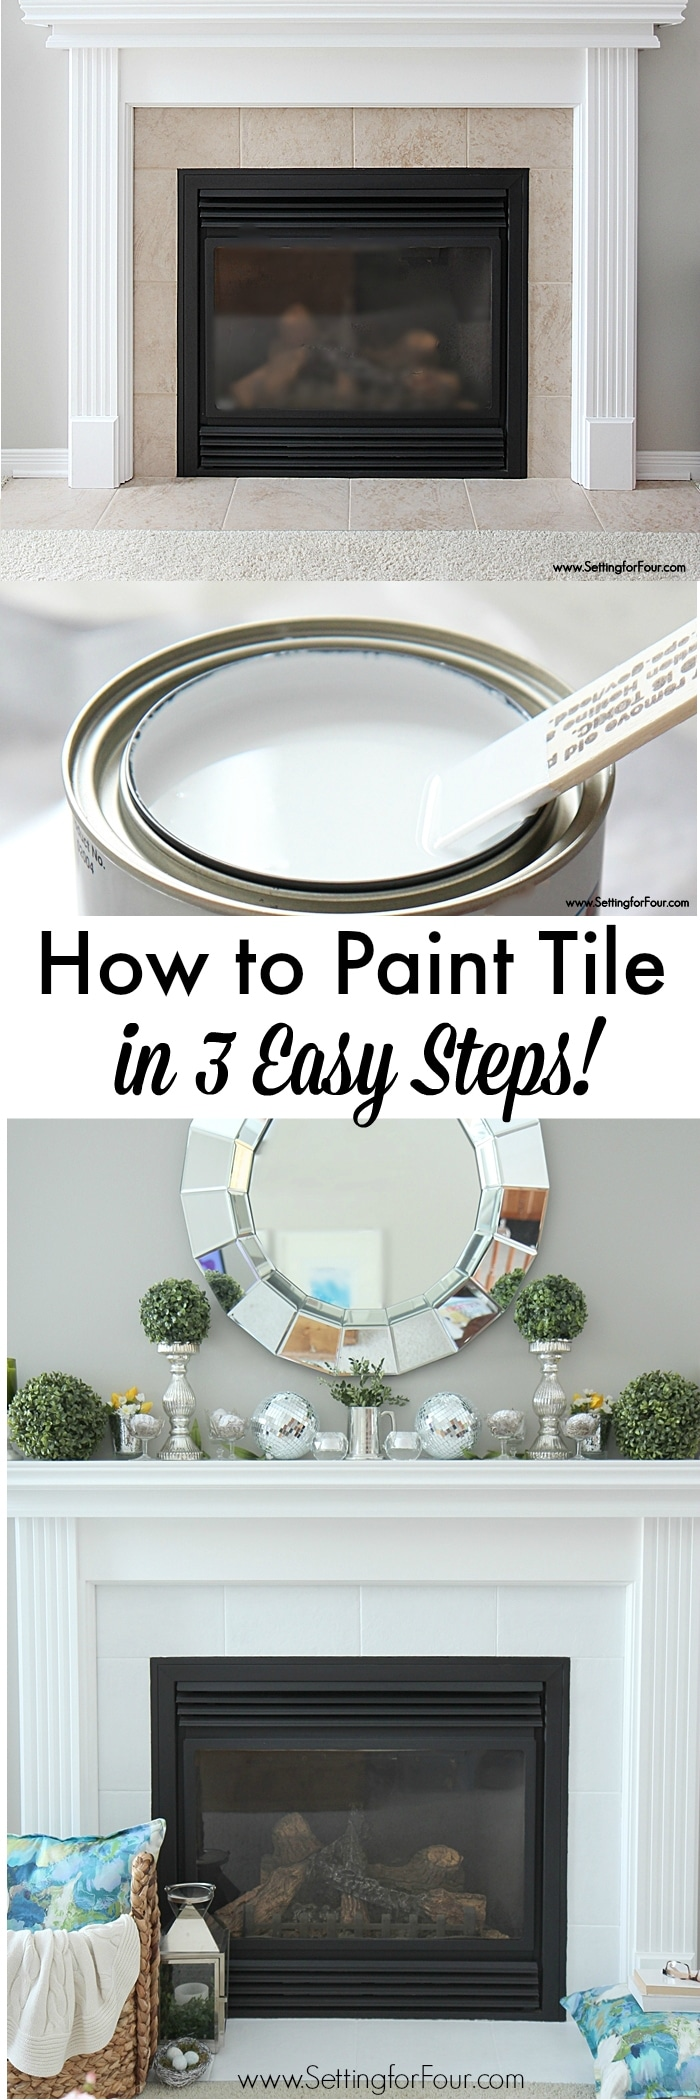 How to Paint Tile in 3 EASY steps! I show you the supplies and type of paint I used to give boring beige fireplace tile a fresh white update!